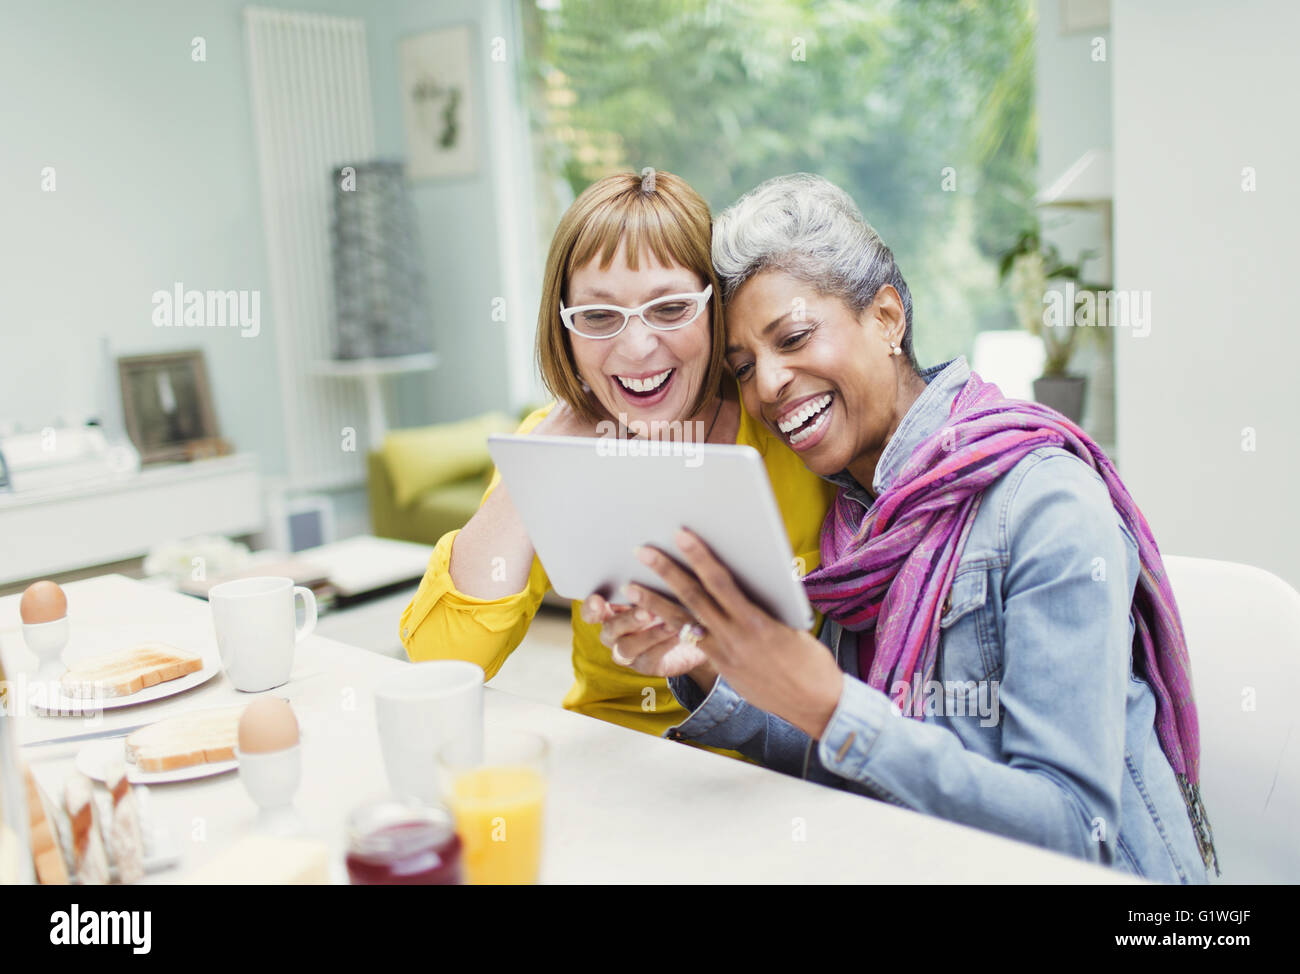 Laughing mature women sharing digital tablet at breakfast table - Stock Image